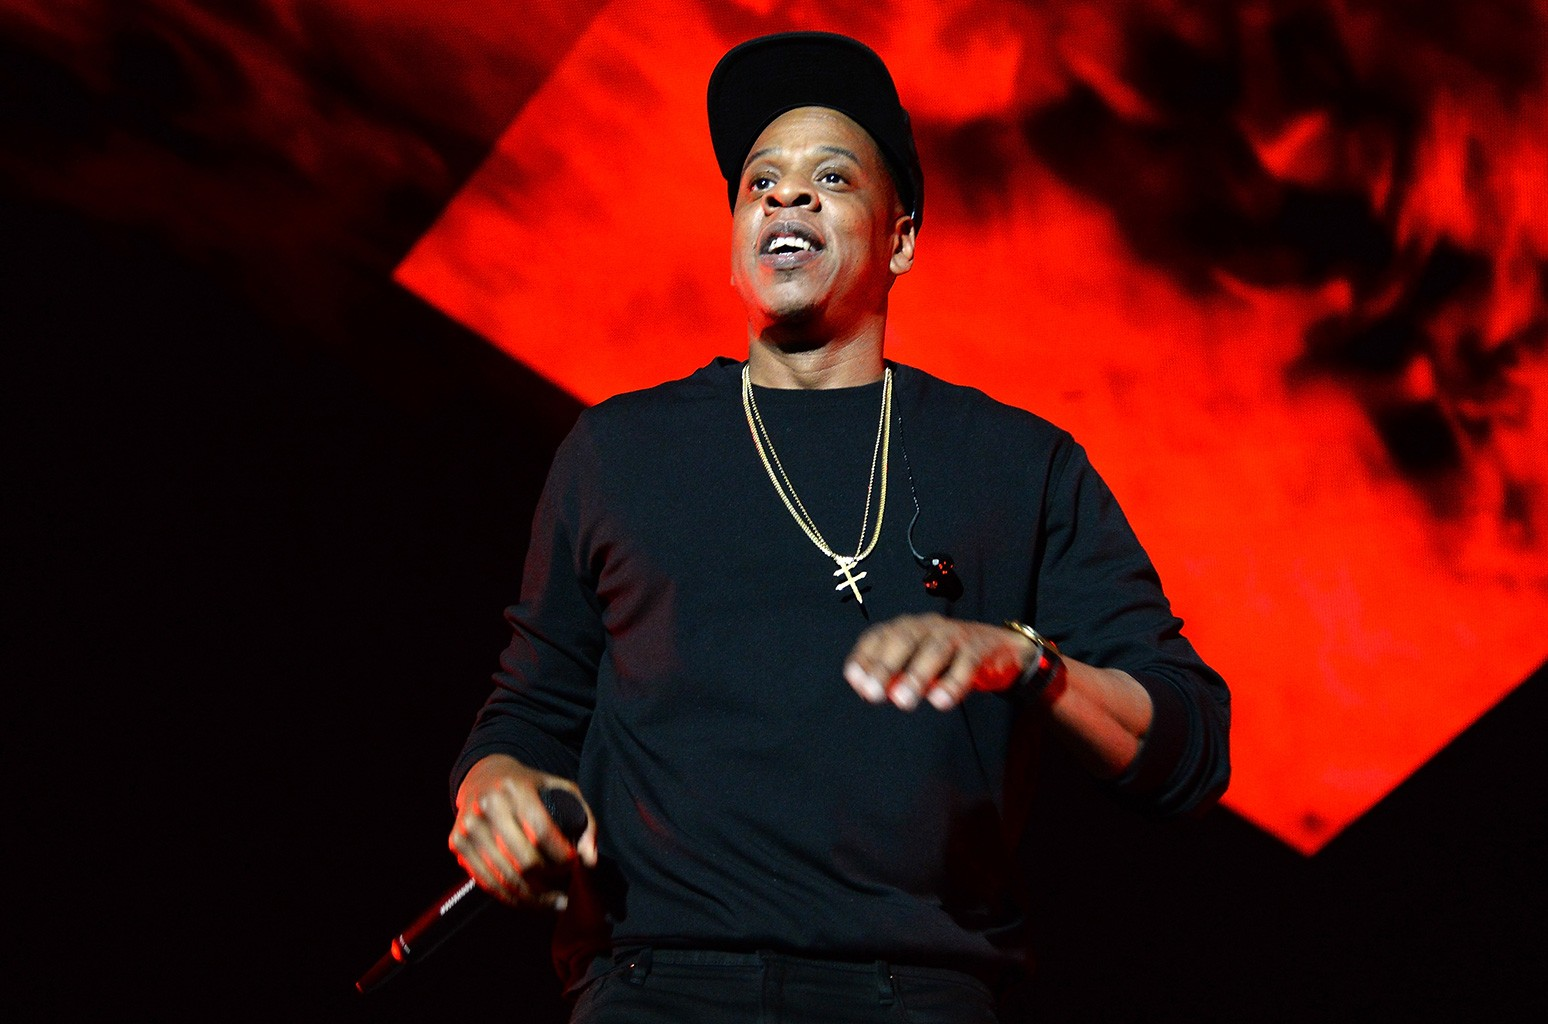 Jay-Z performs onstage during TIDAL X: 1020 Amplified by HTC at Barclays Center of Brooklyn on Oct. 20, 2015 in New York City.